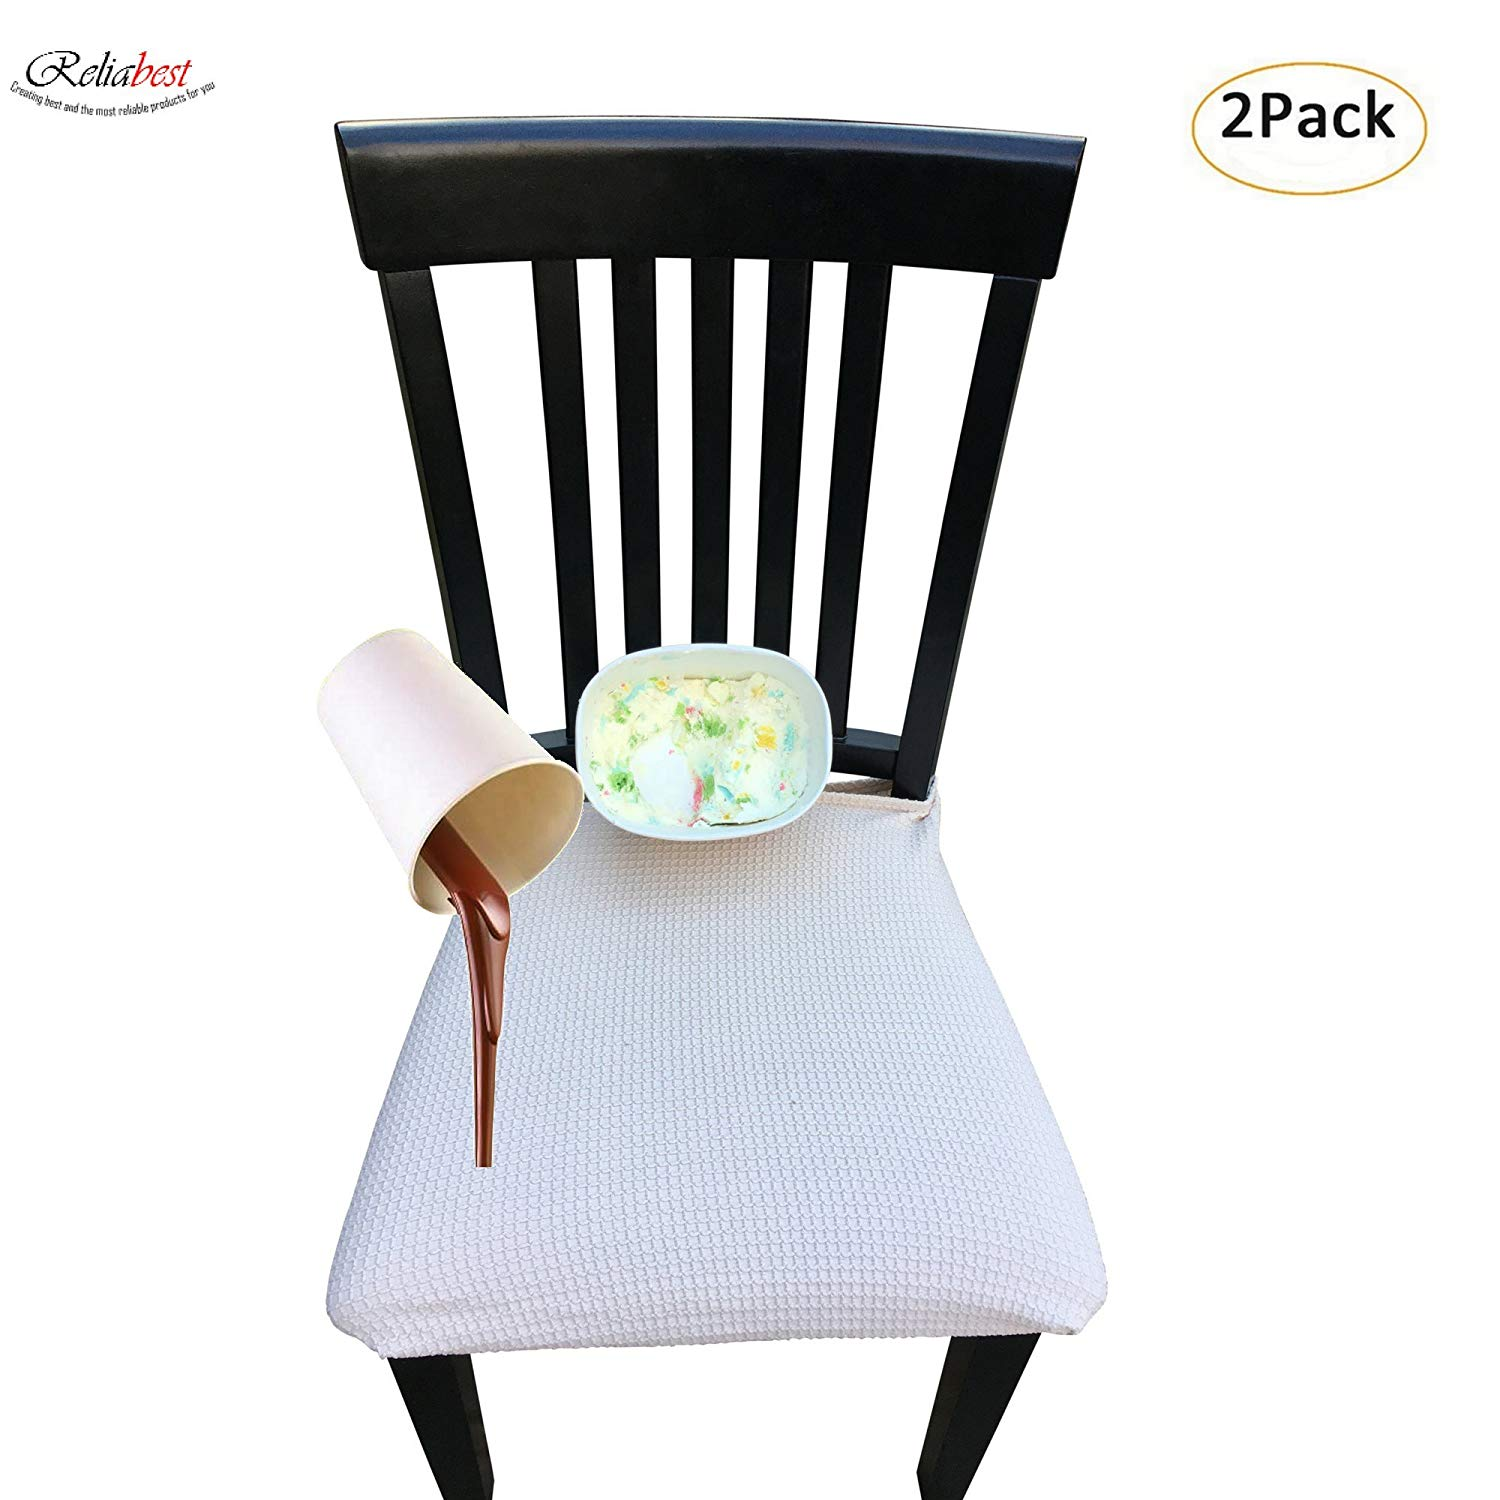 RELIABEST Waterproof Dining Chair Cover Protector